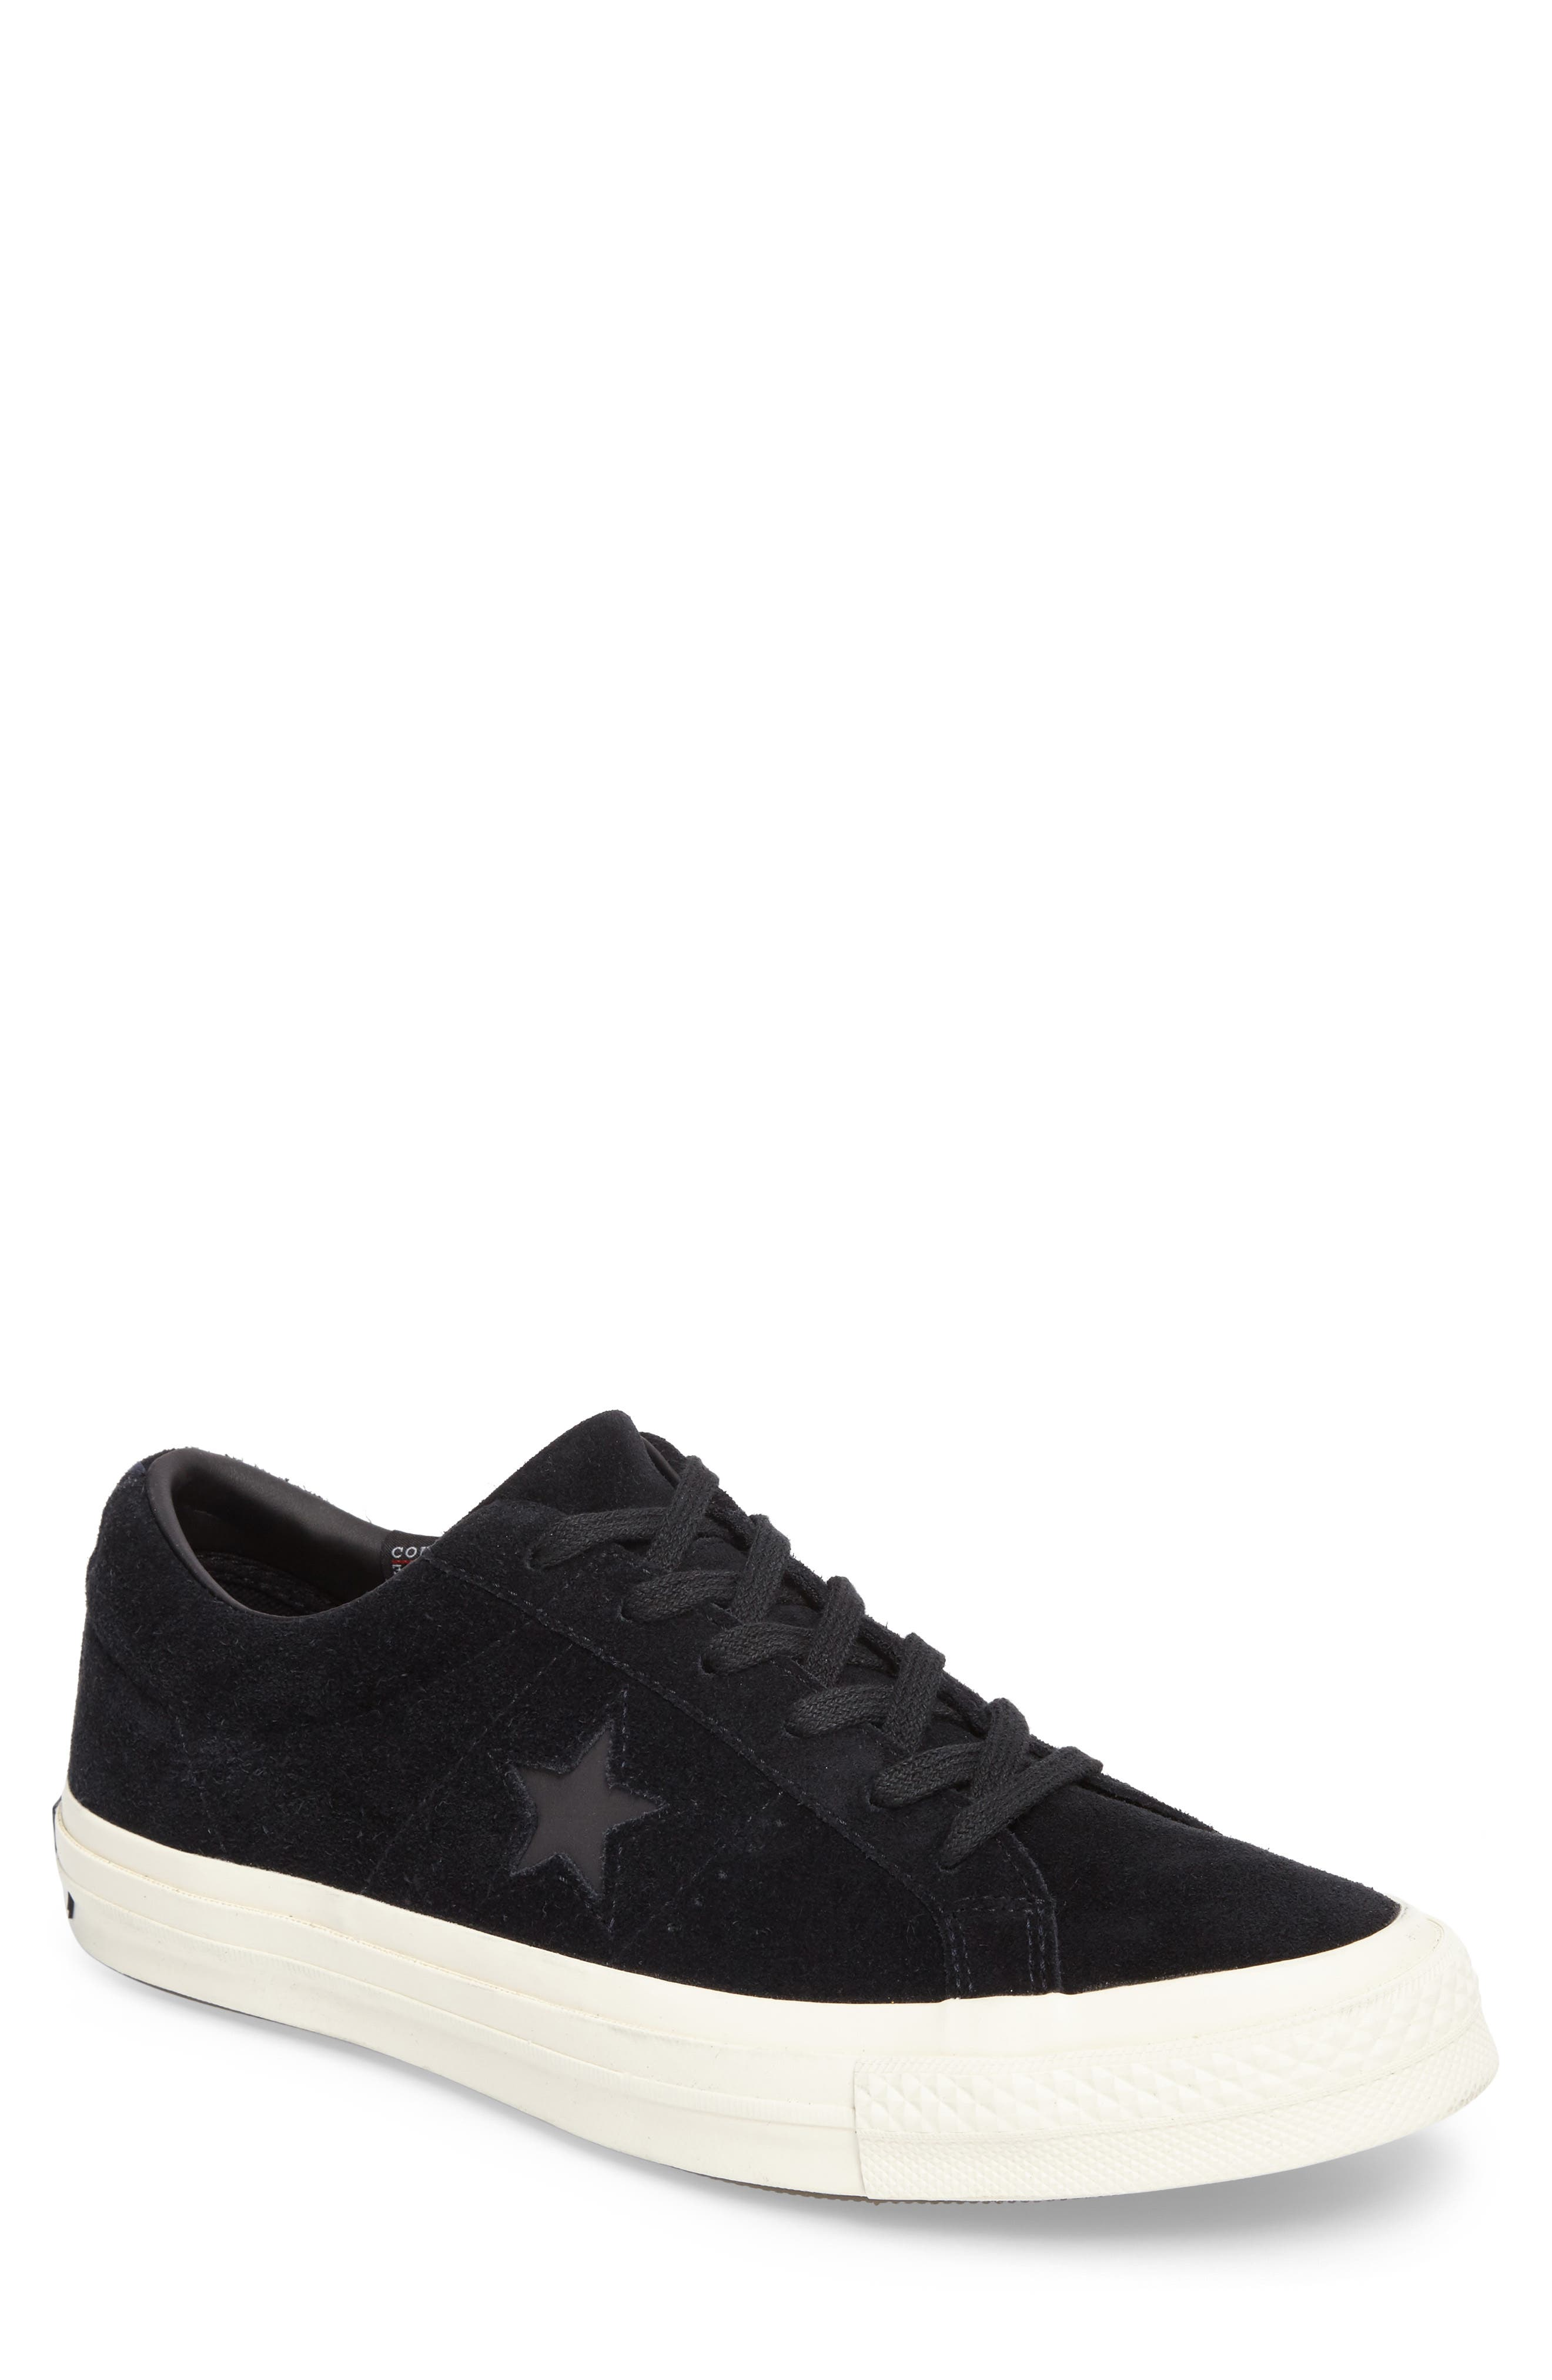 One Star Sneaker,                             Main thumbnail 1, color,